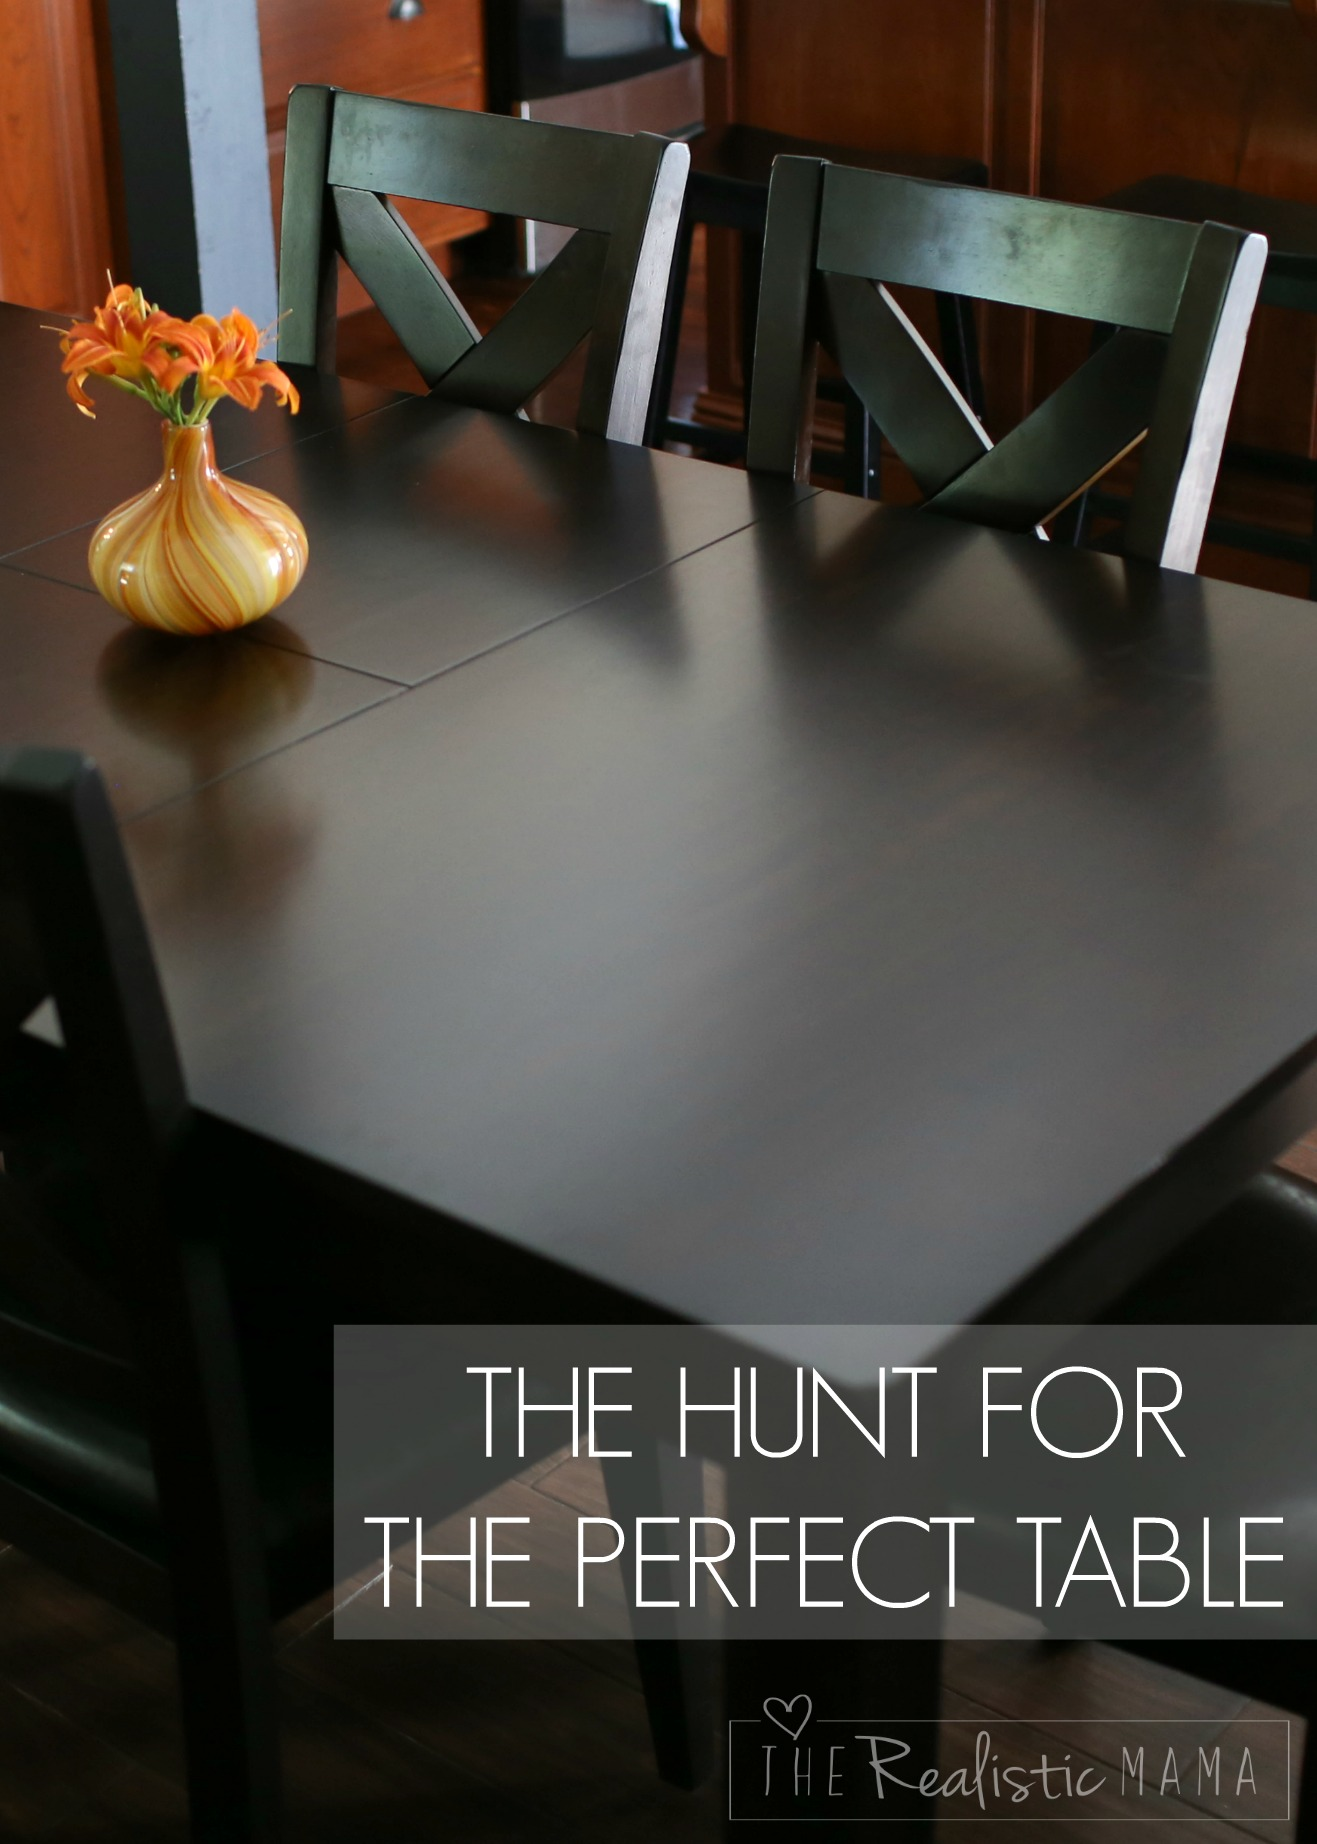 The hunt for the perfect table.